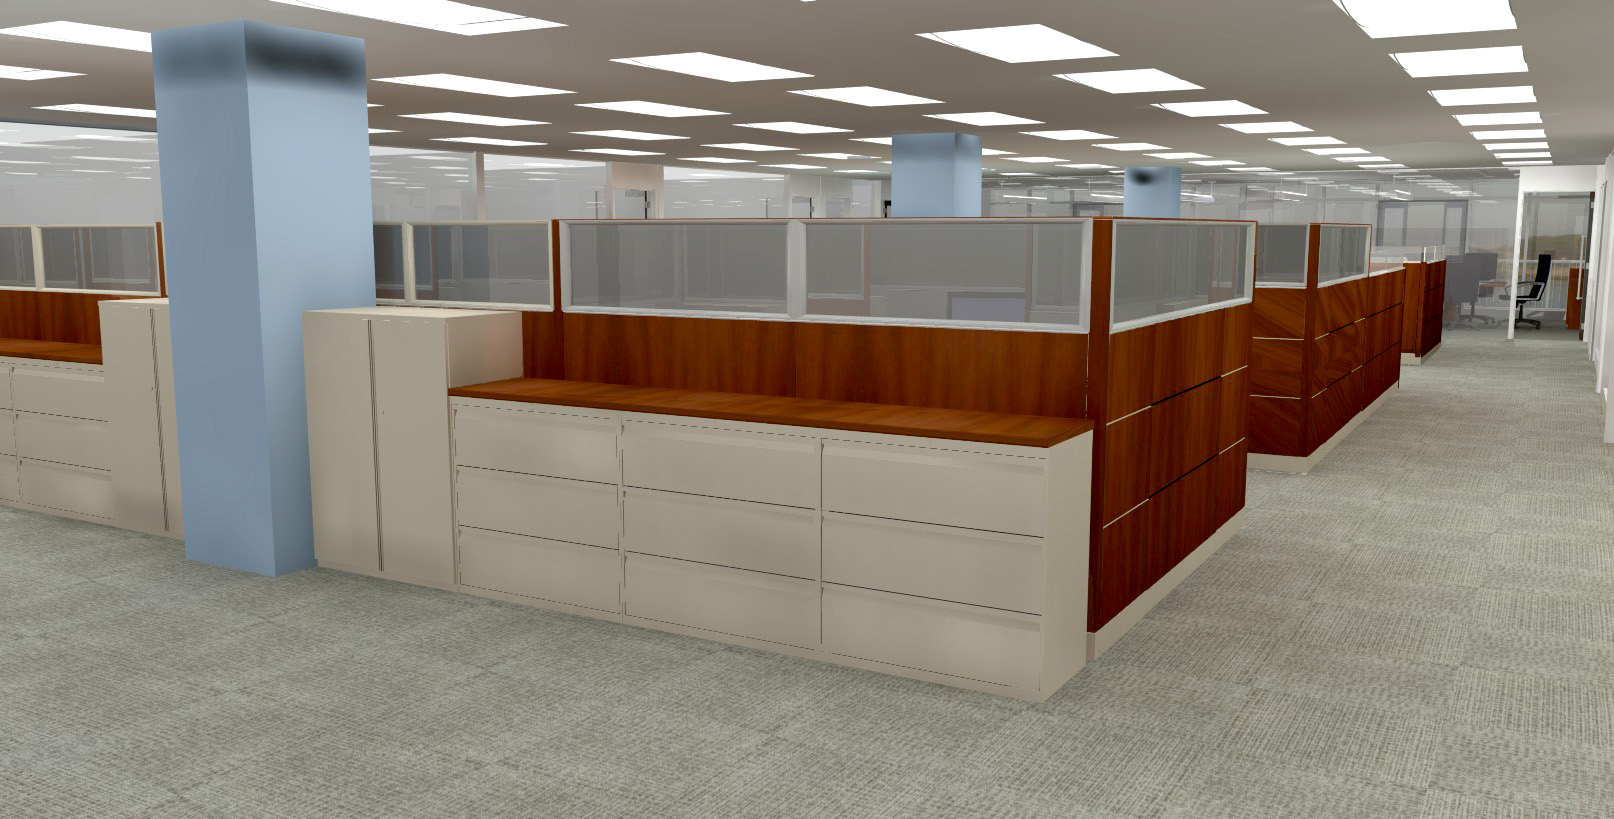 Cubicle view I. Rendering